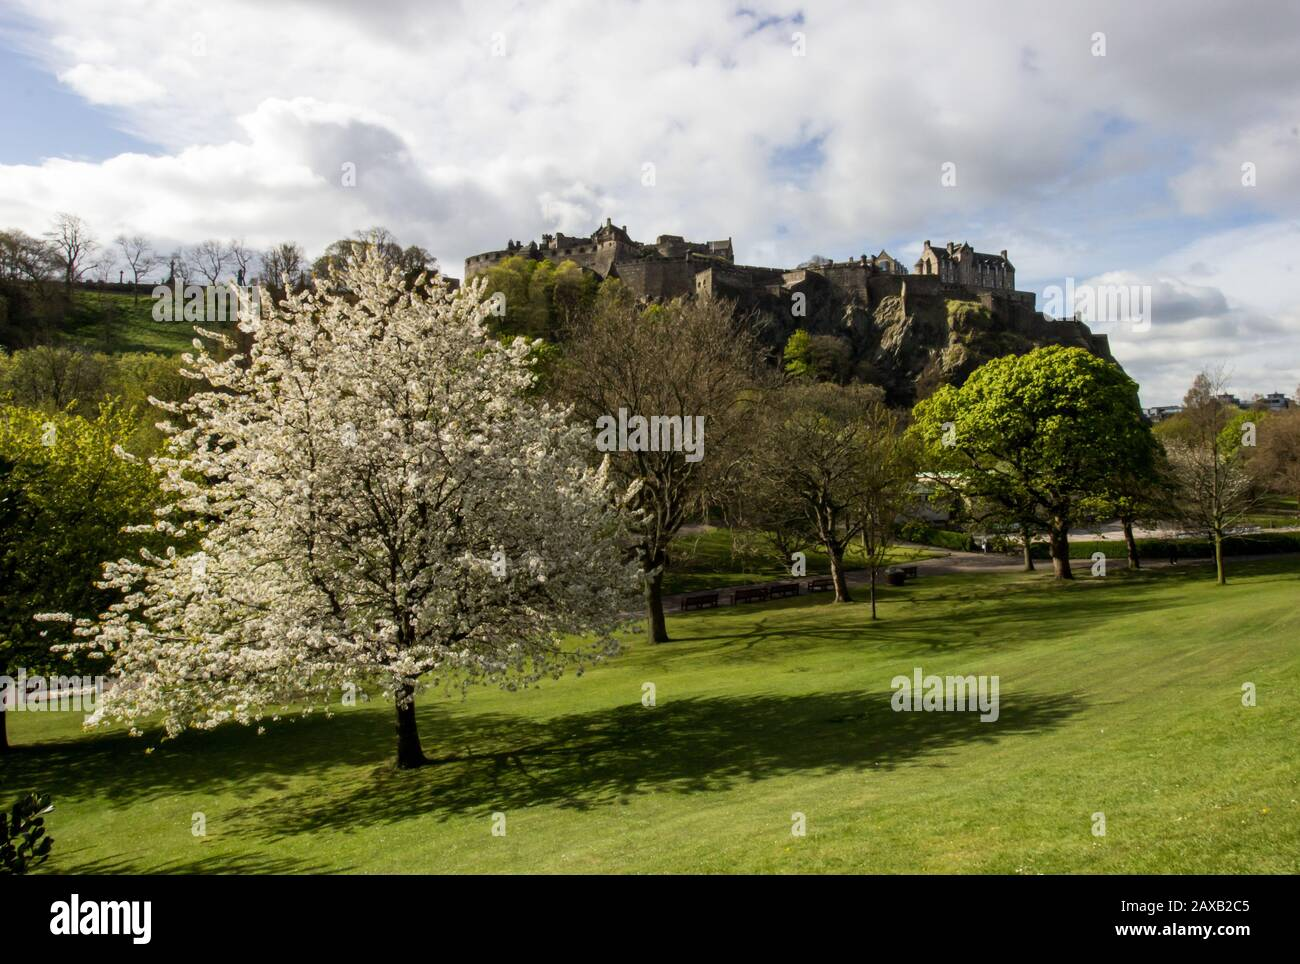 Edinburg Castle looking out over Princess Street Gardens in spring, photographed on a sunny day in the early morning. Stock Photo